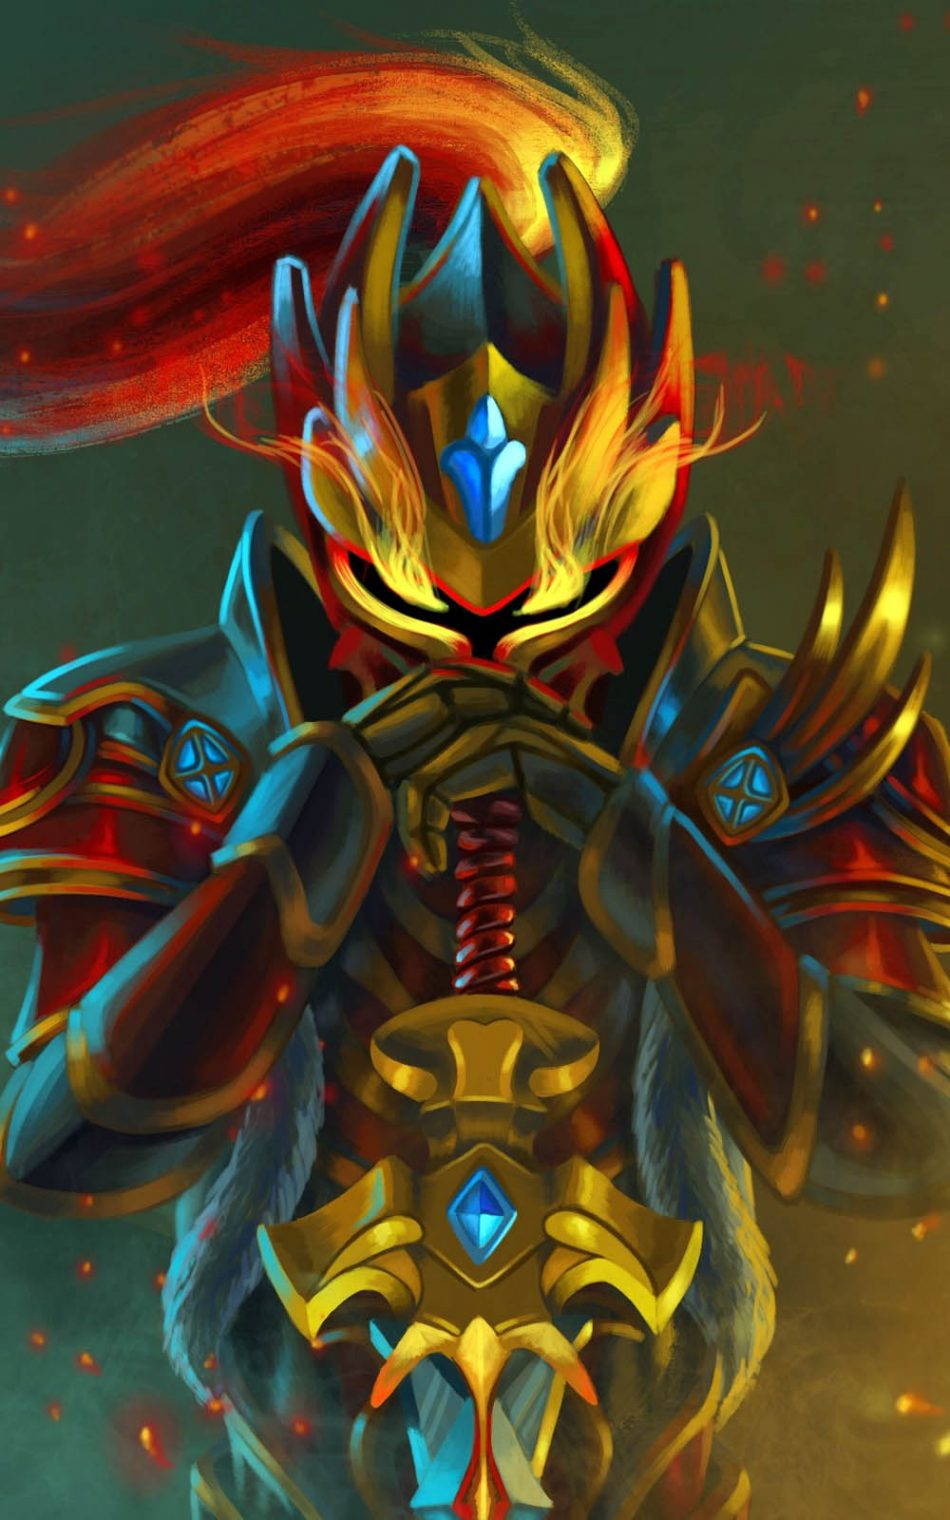 dragon knight dota 2 download free 100 pure hd quality mobile